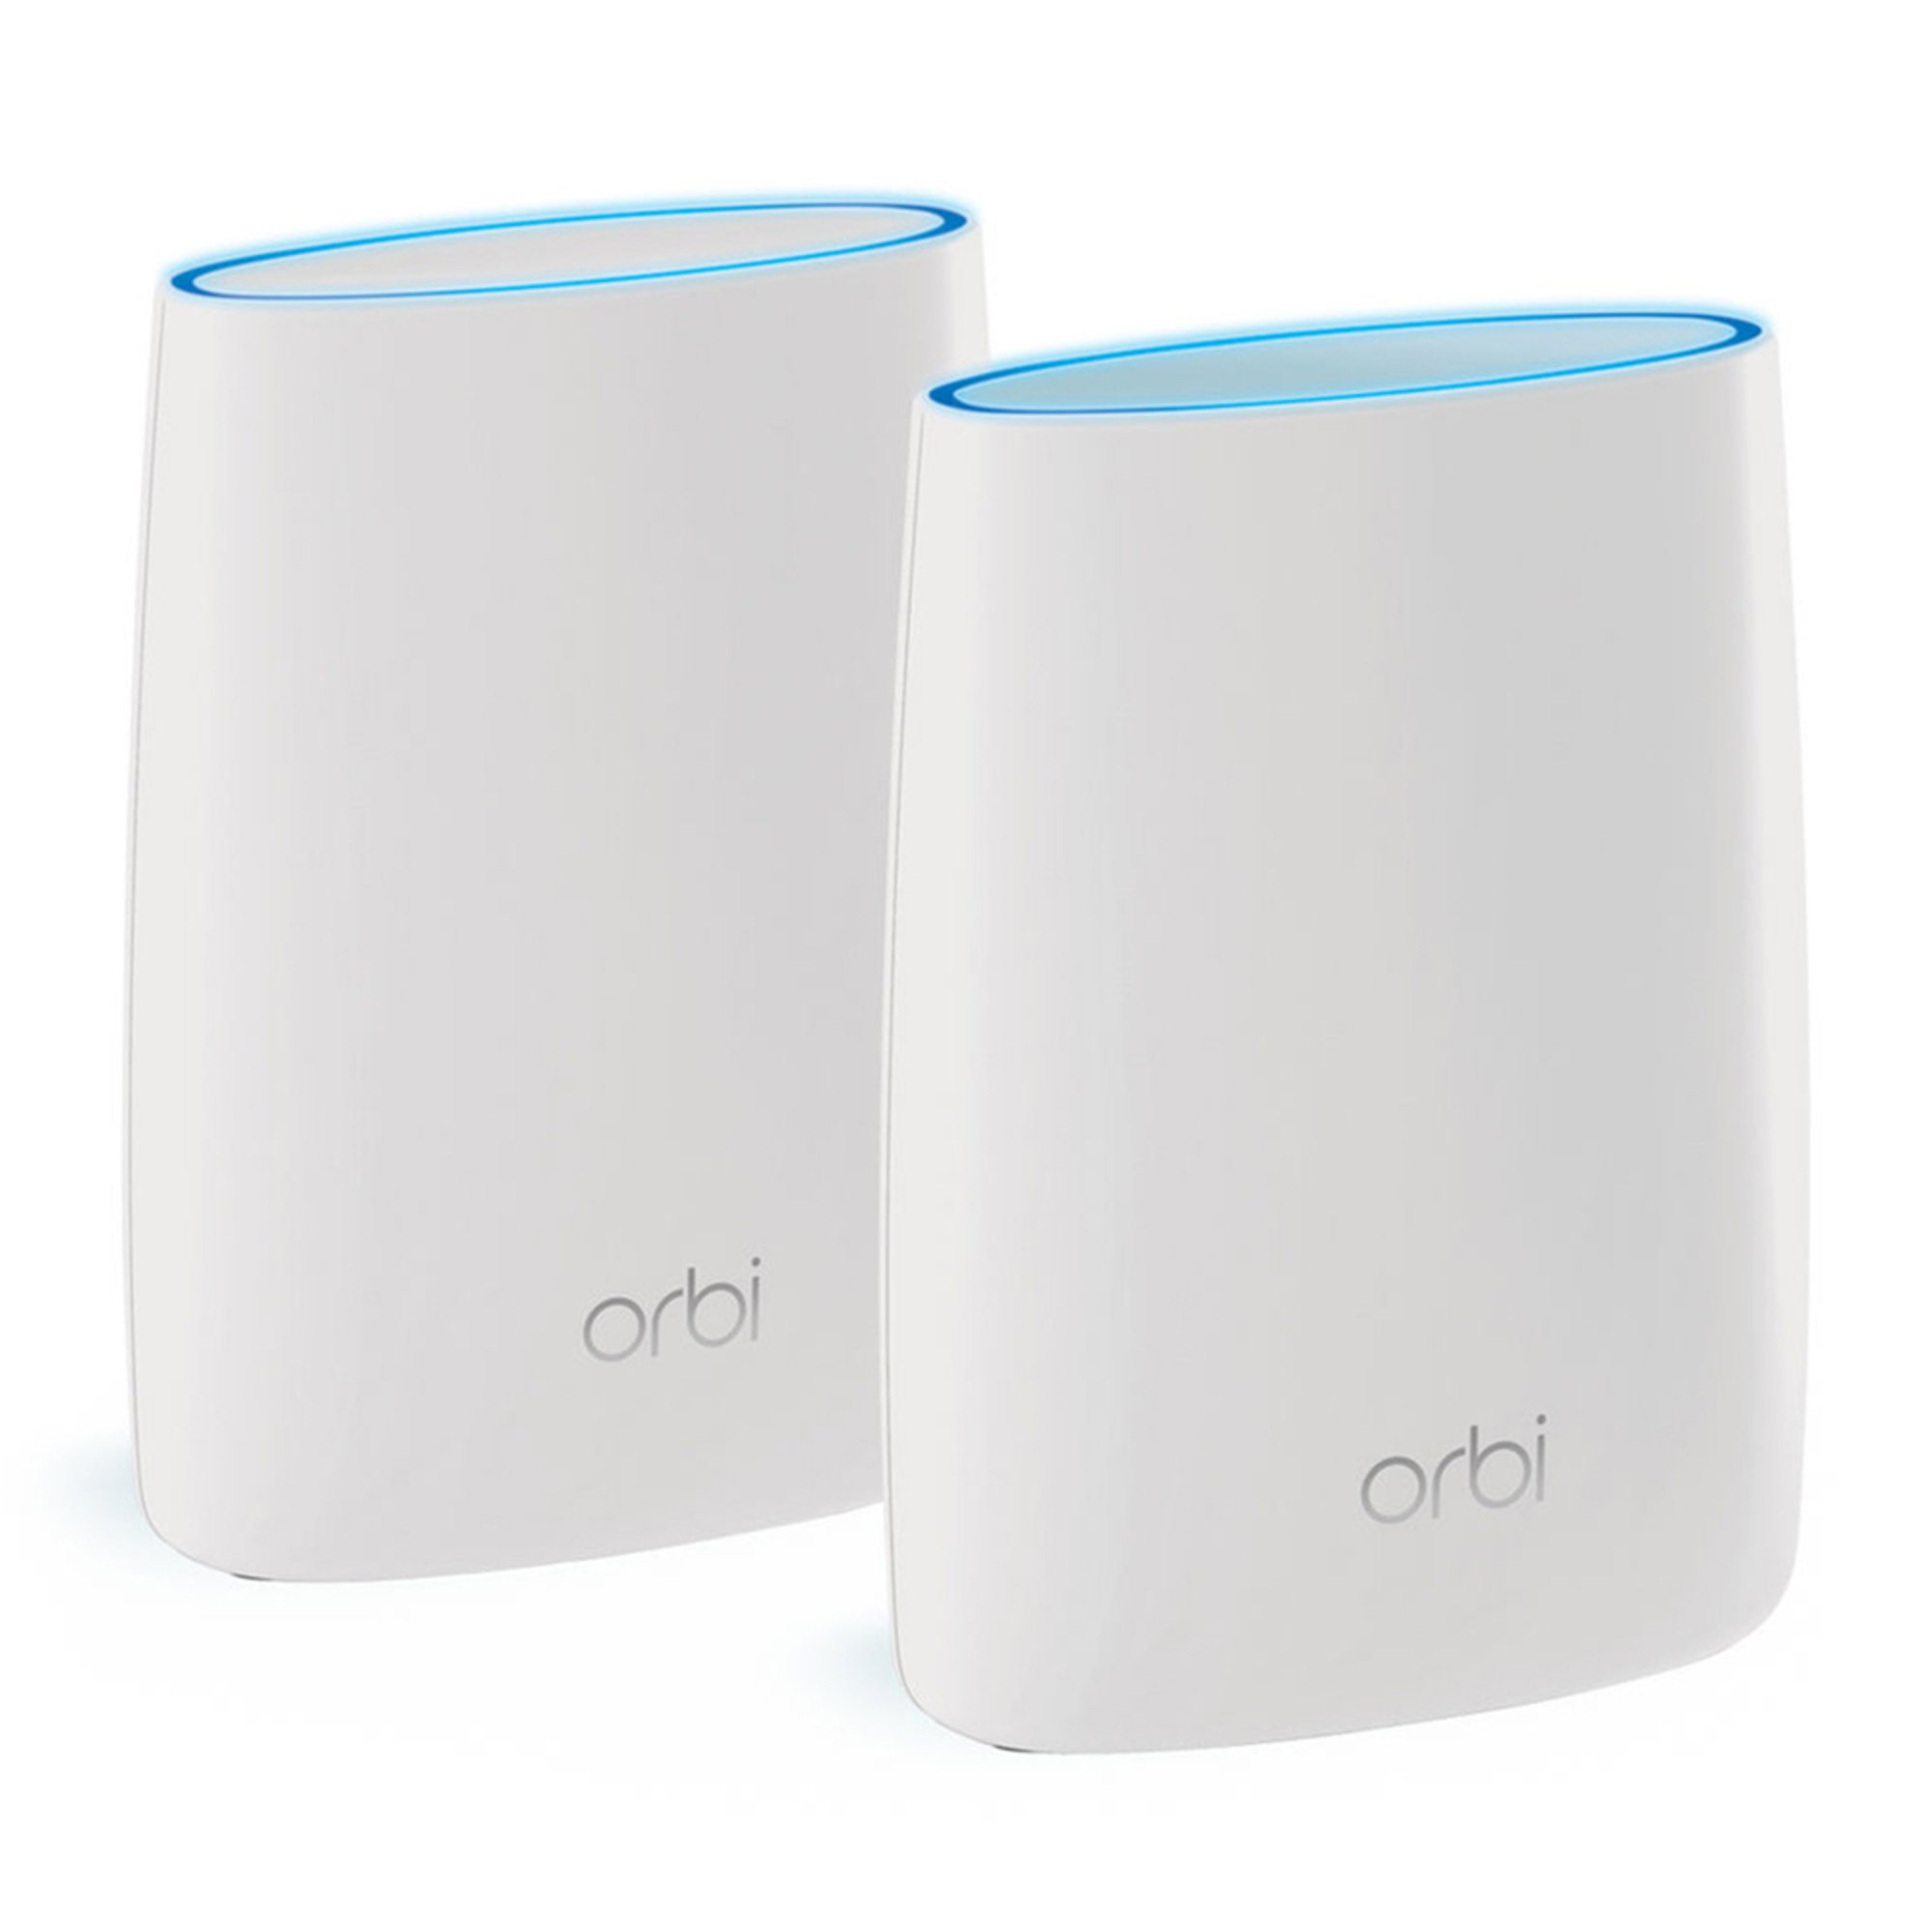 Netgear Orbi Wireless Router Ac3000 Tri Band Wi Fi System